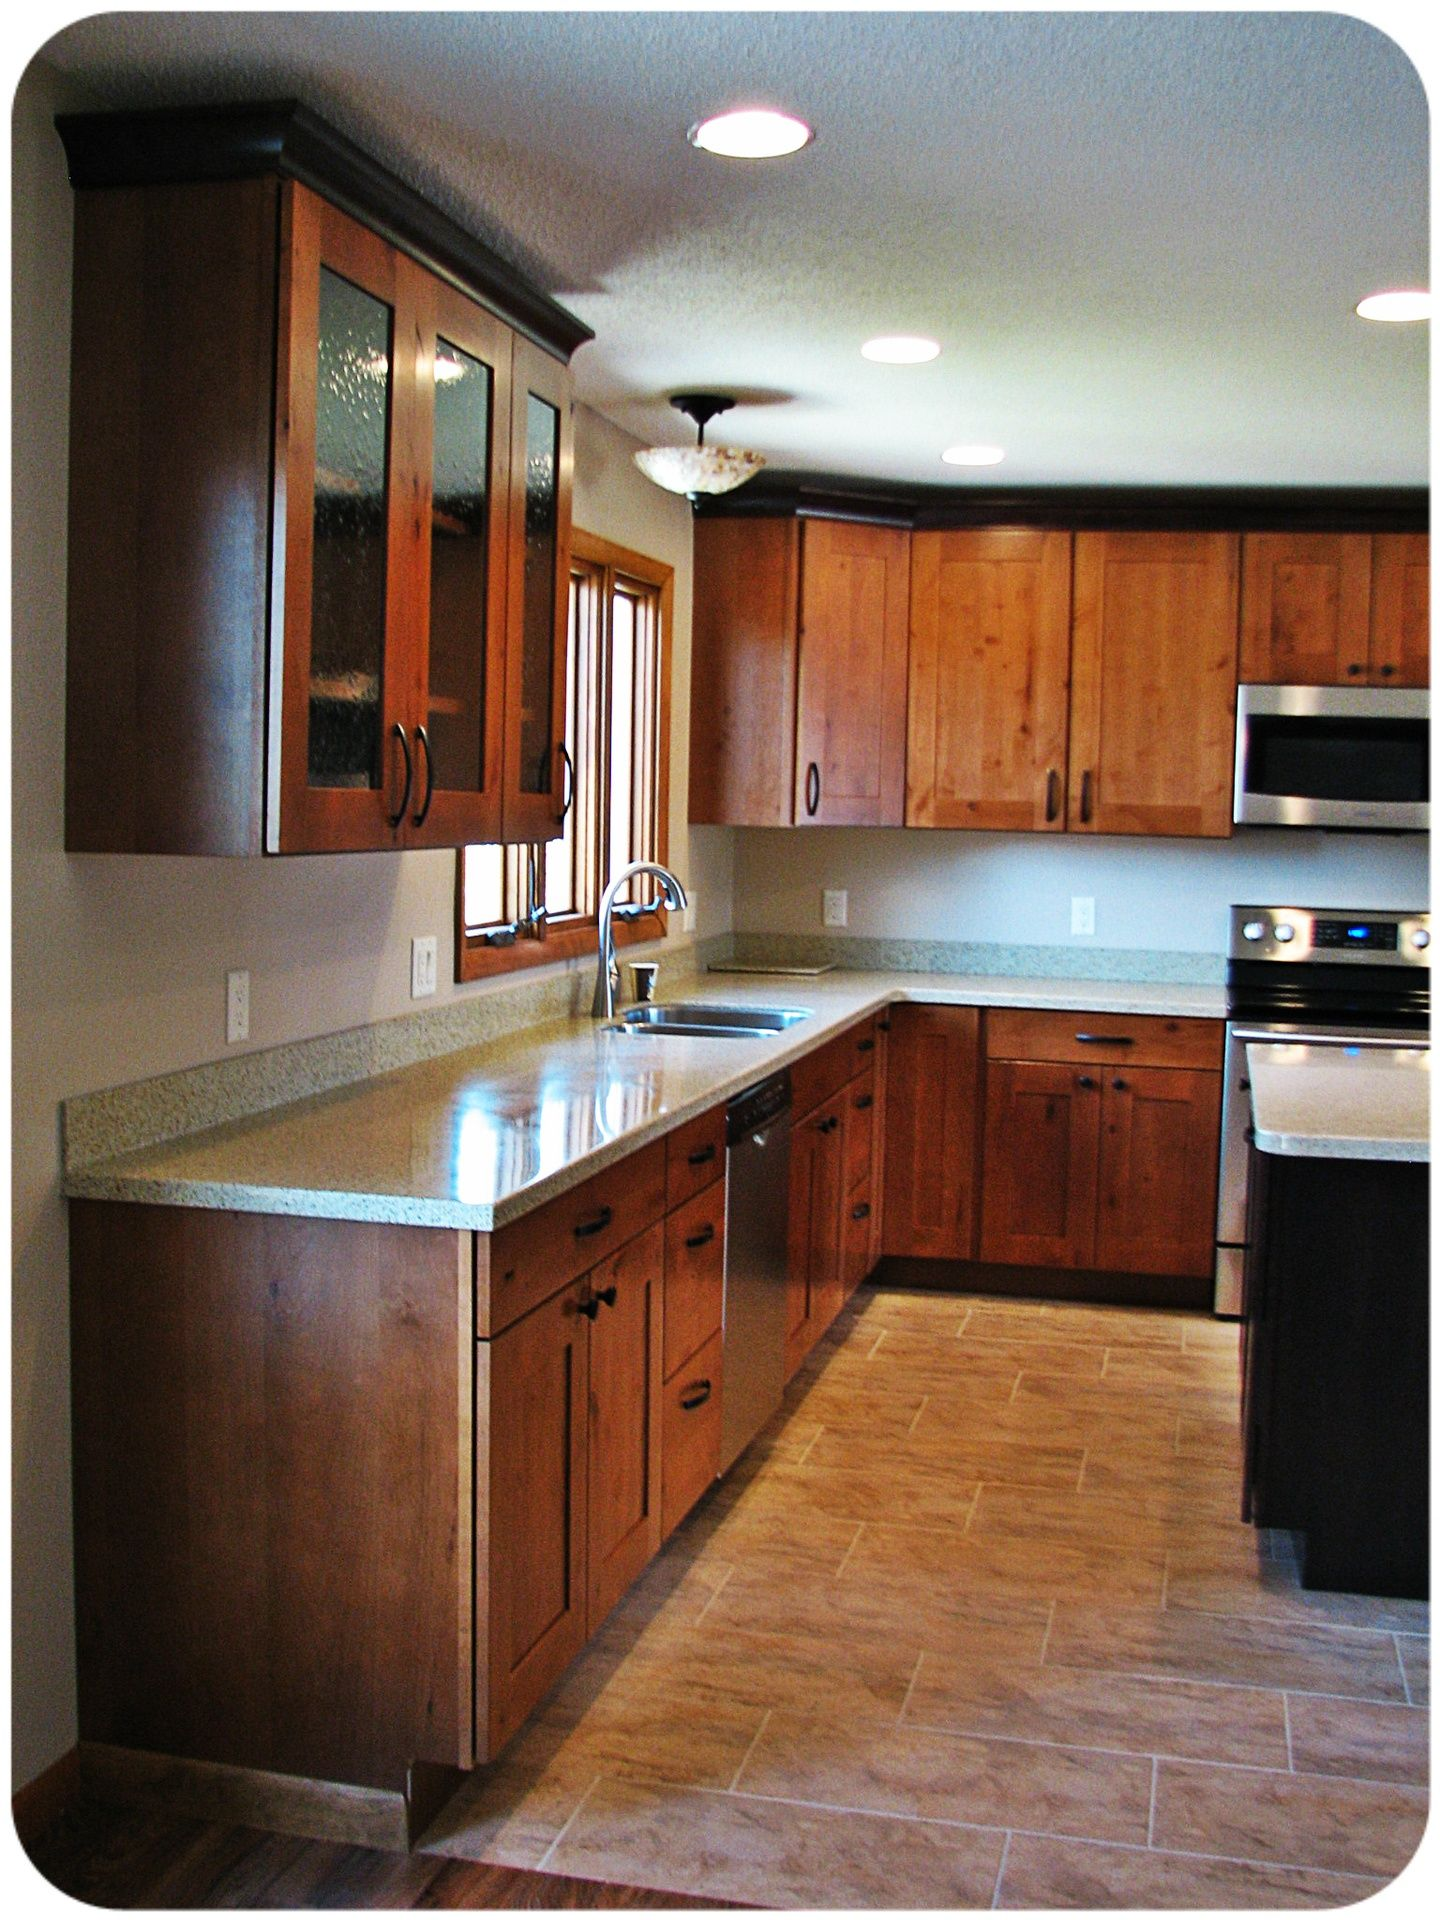 Westportkitchenandbath Com Countertops Mid Continent Cabinetry